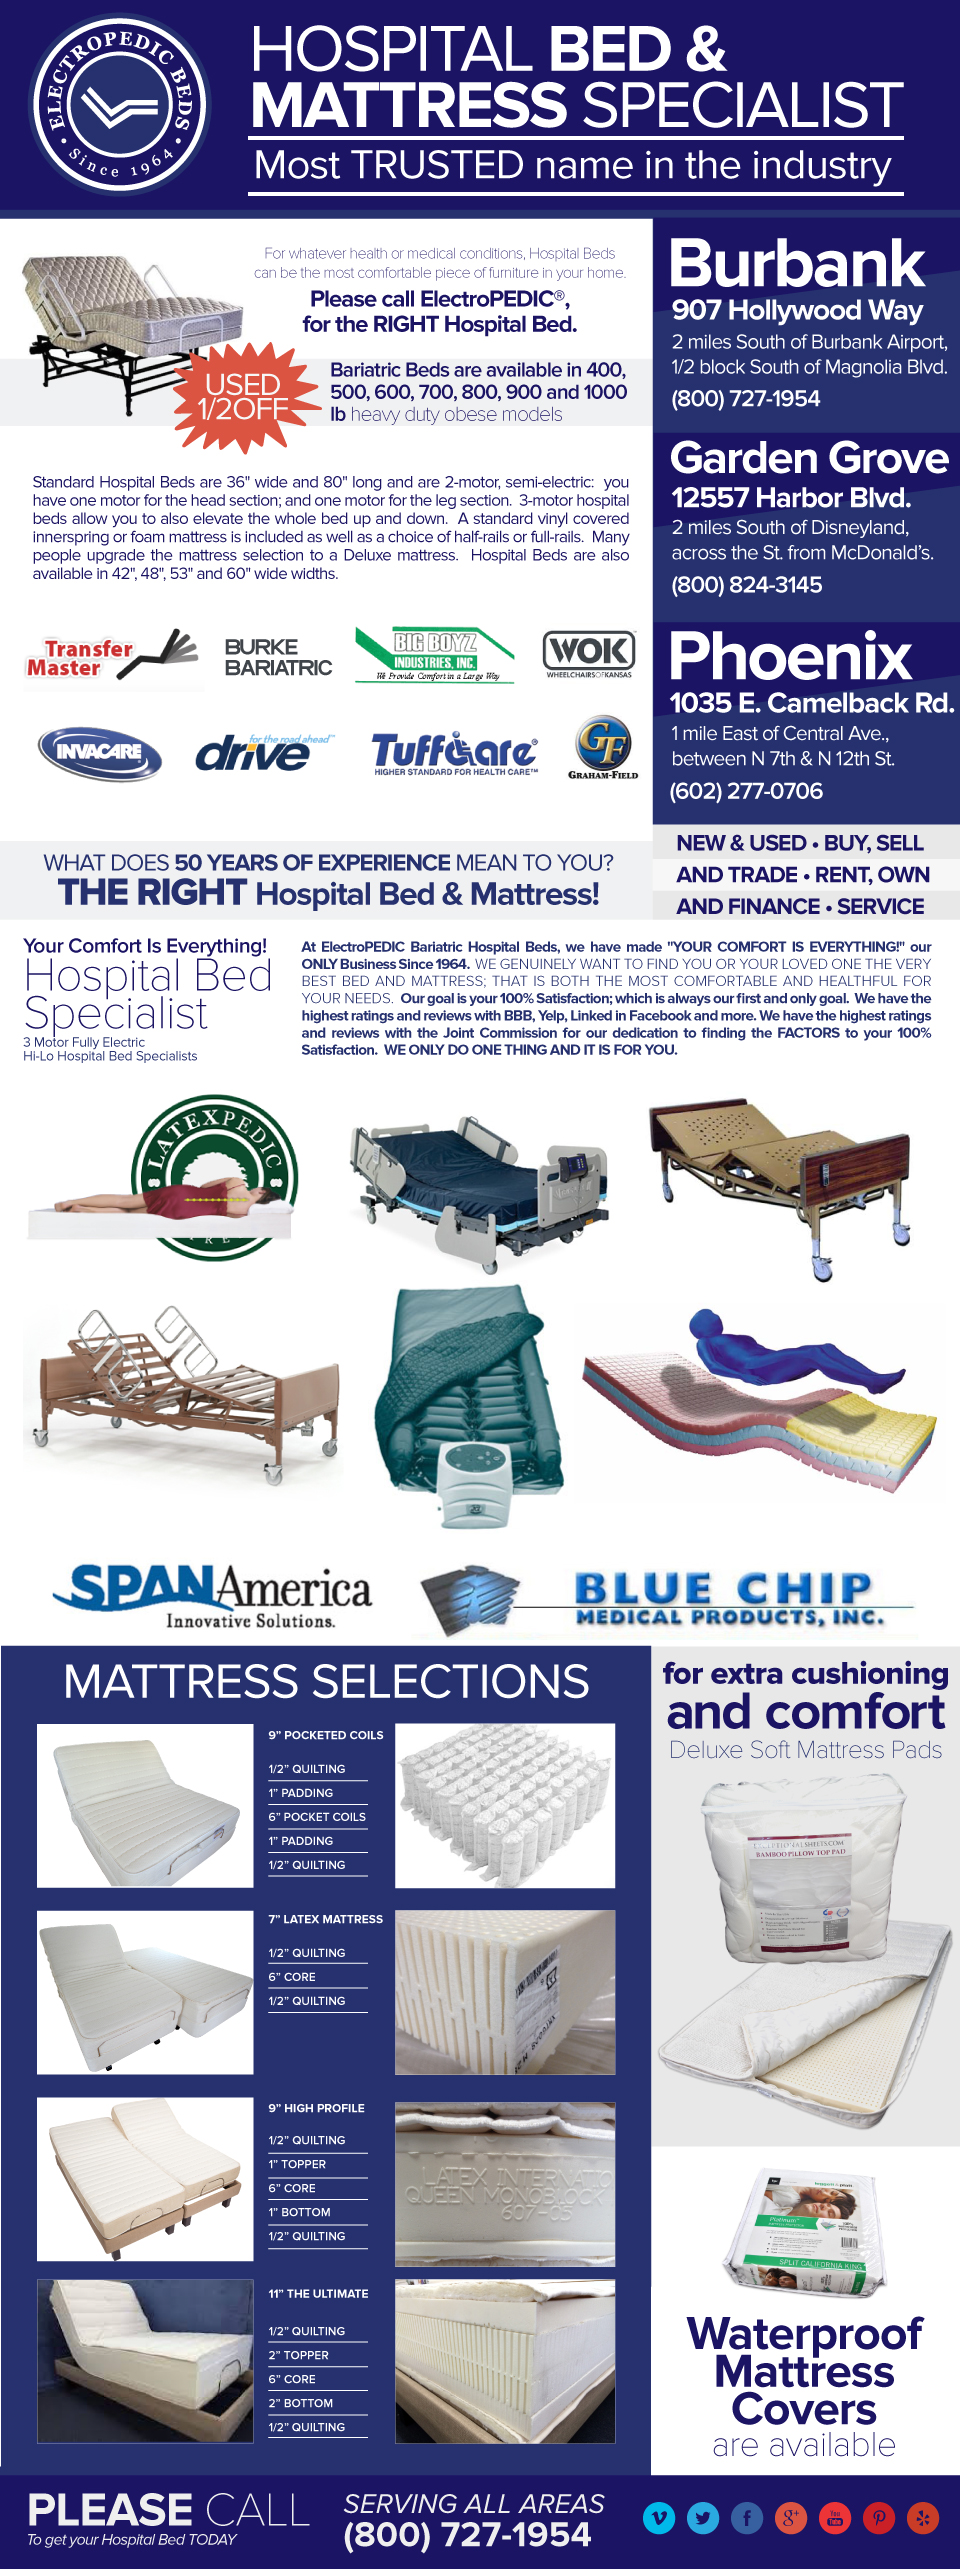 bariatric mattresses rent Hospital Bed rentals electric beds renting